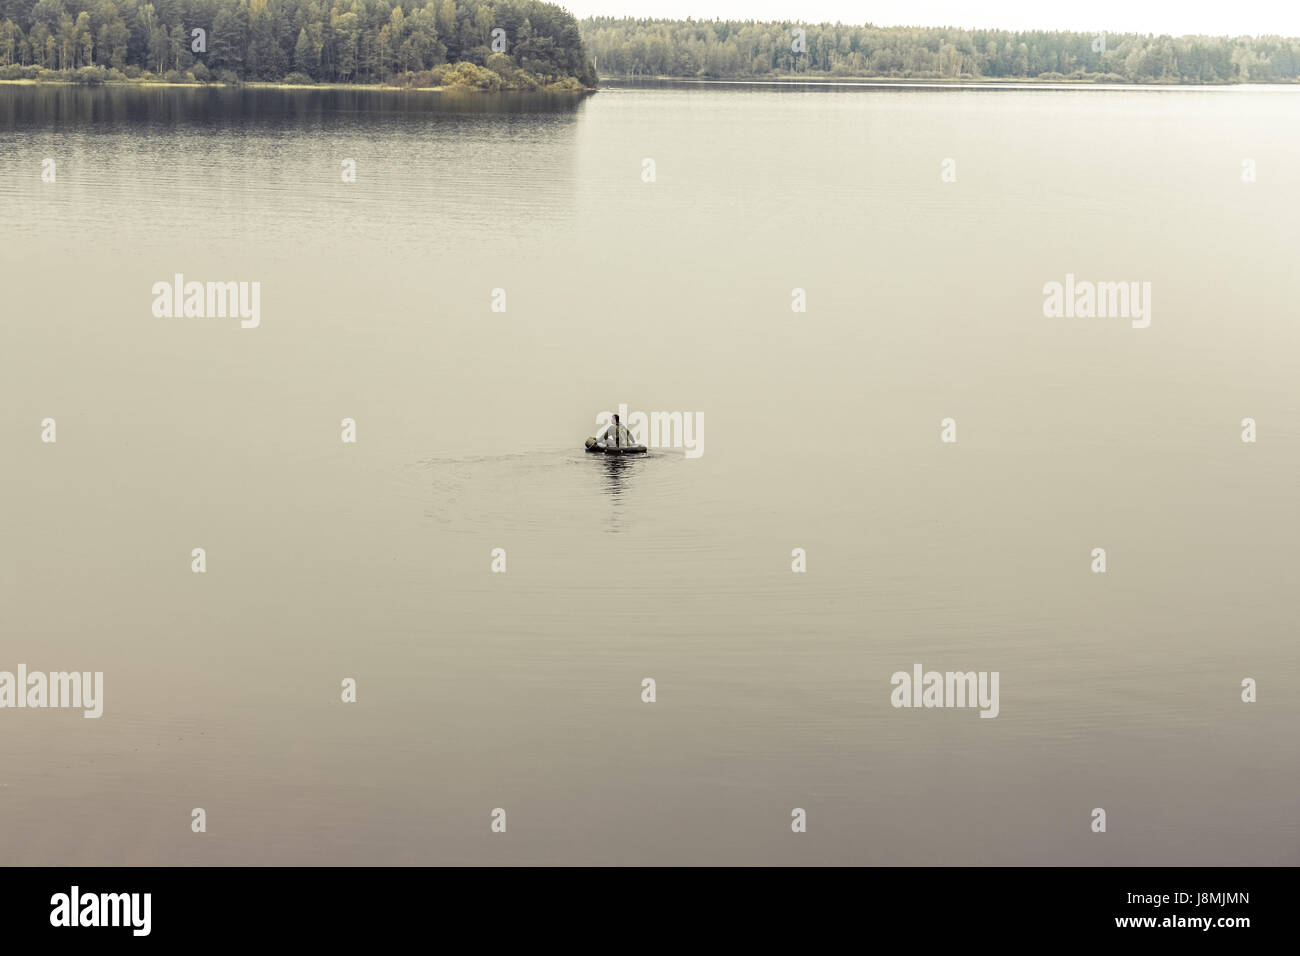 Exploring man in boat in the middle of vast expanses of tranquil lake. Symbolizing loneliness and searching - Stock Image